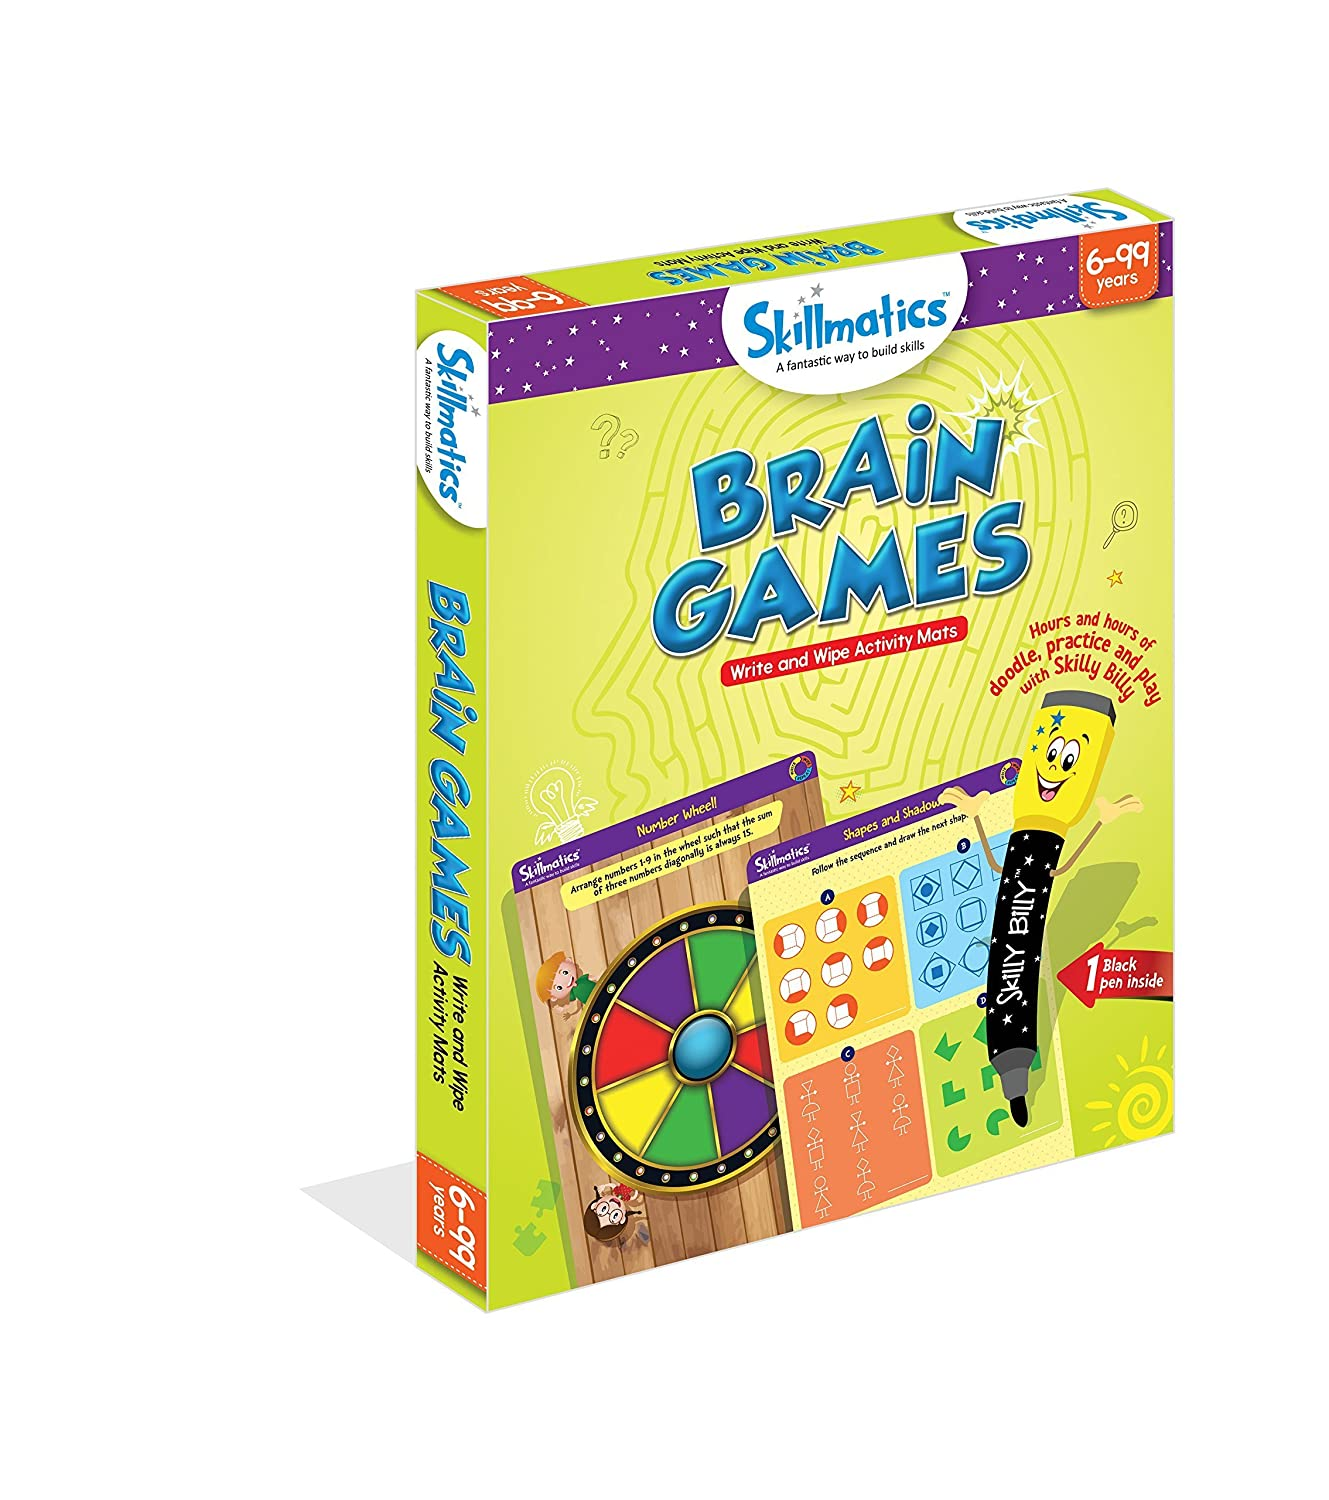 Skillmatics Educational Game: Brain Games (6-99 Years)   Fun Learning Games  and Activities for Kids